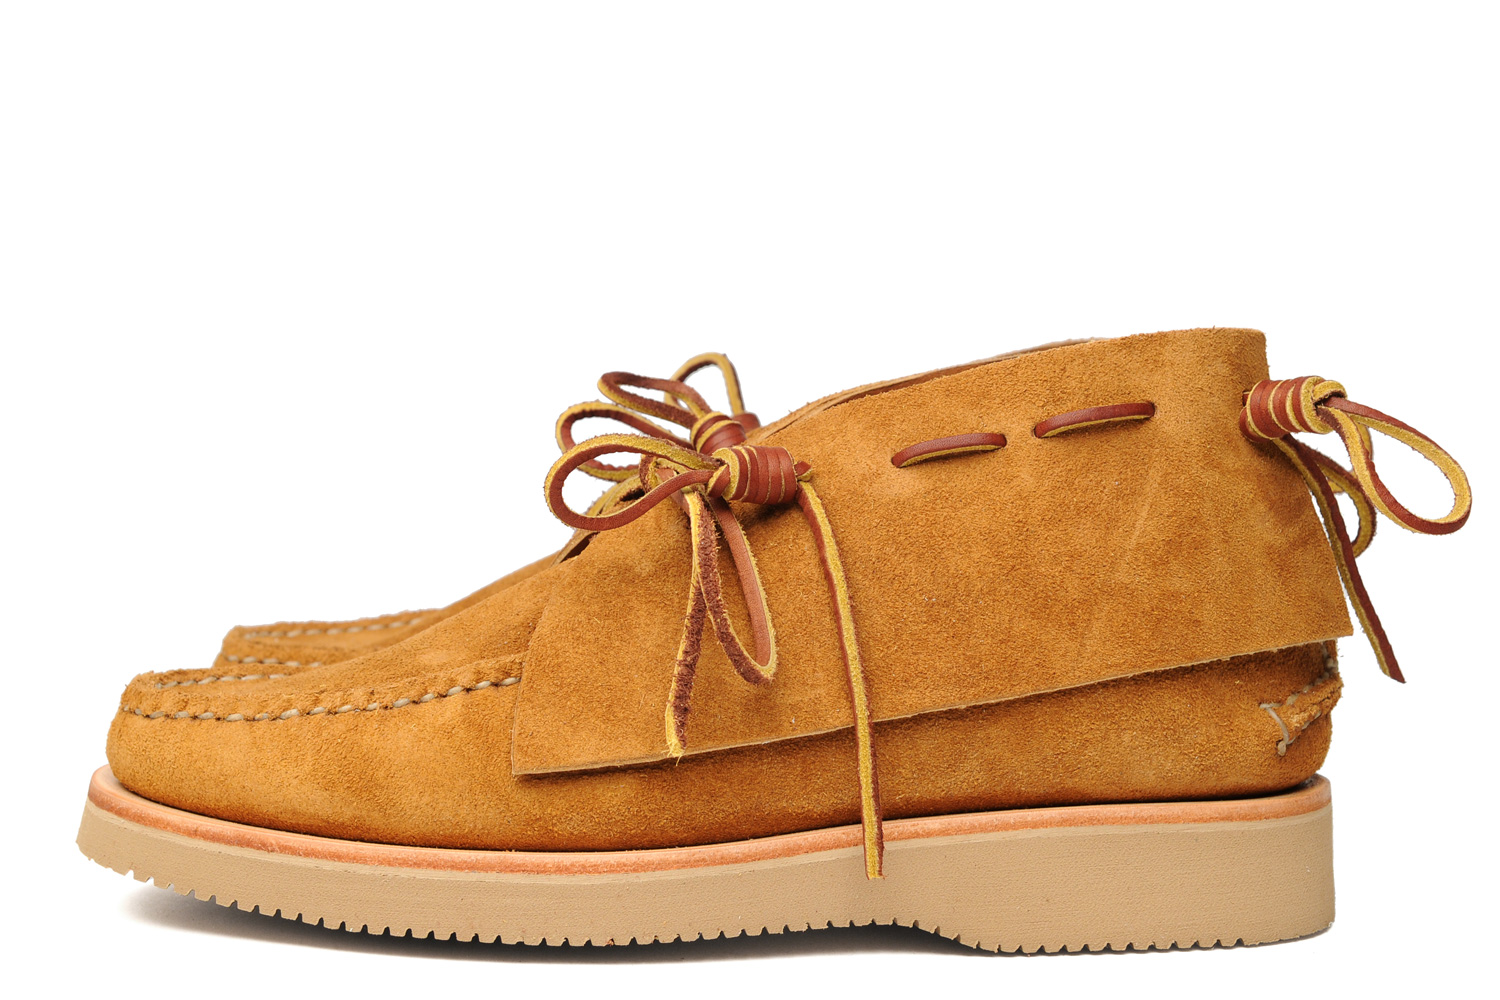 17623M-8-PIG-TAIL--TAILS-CHUKKA-W-2060-FO-G-BROWN,-PROFILE-WHOLESALE.jpg